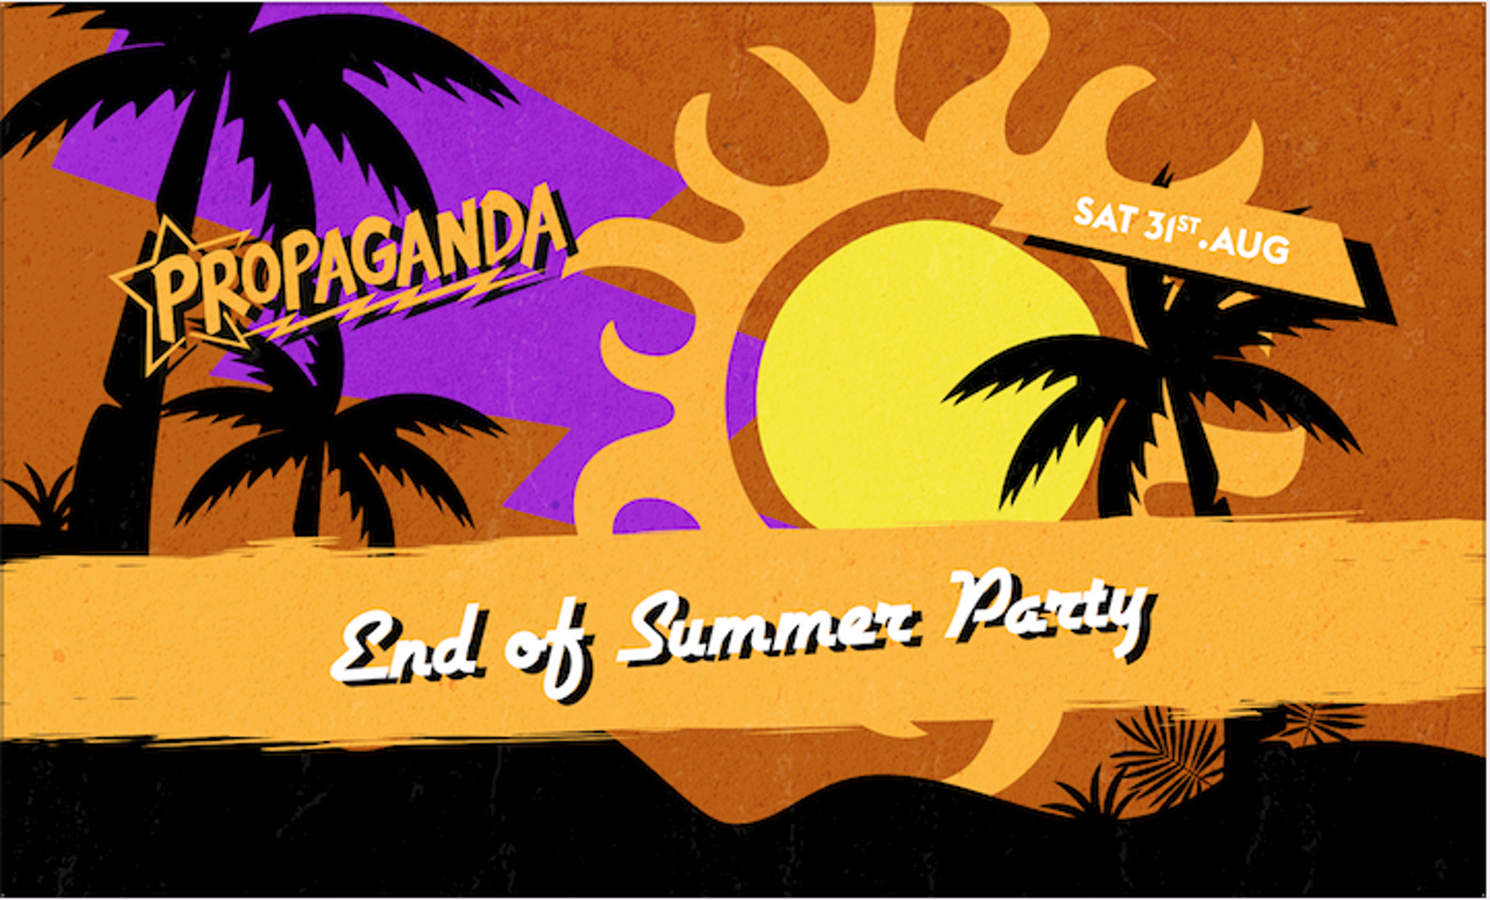 Propaganda Bristol – End of Summer Party